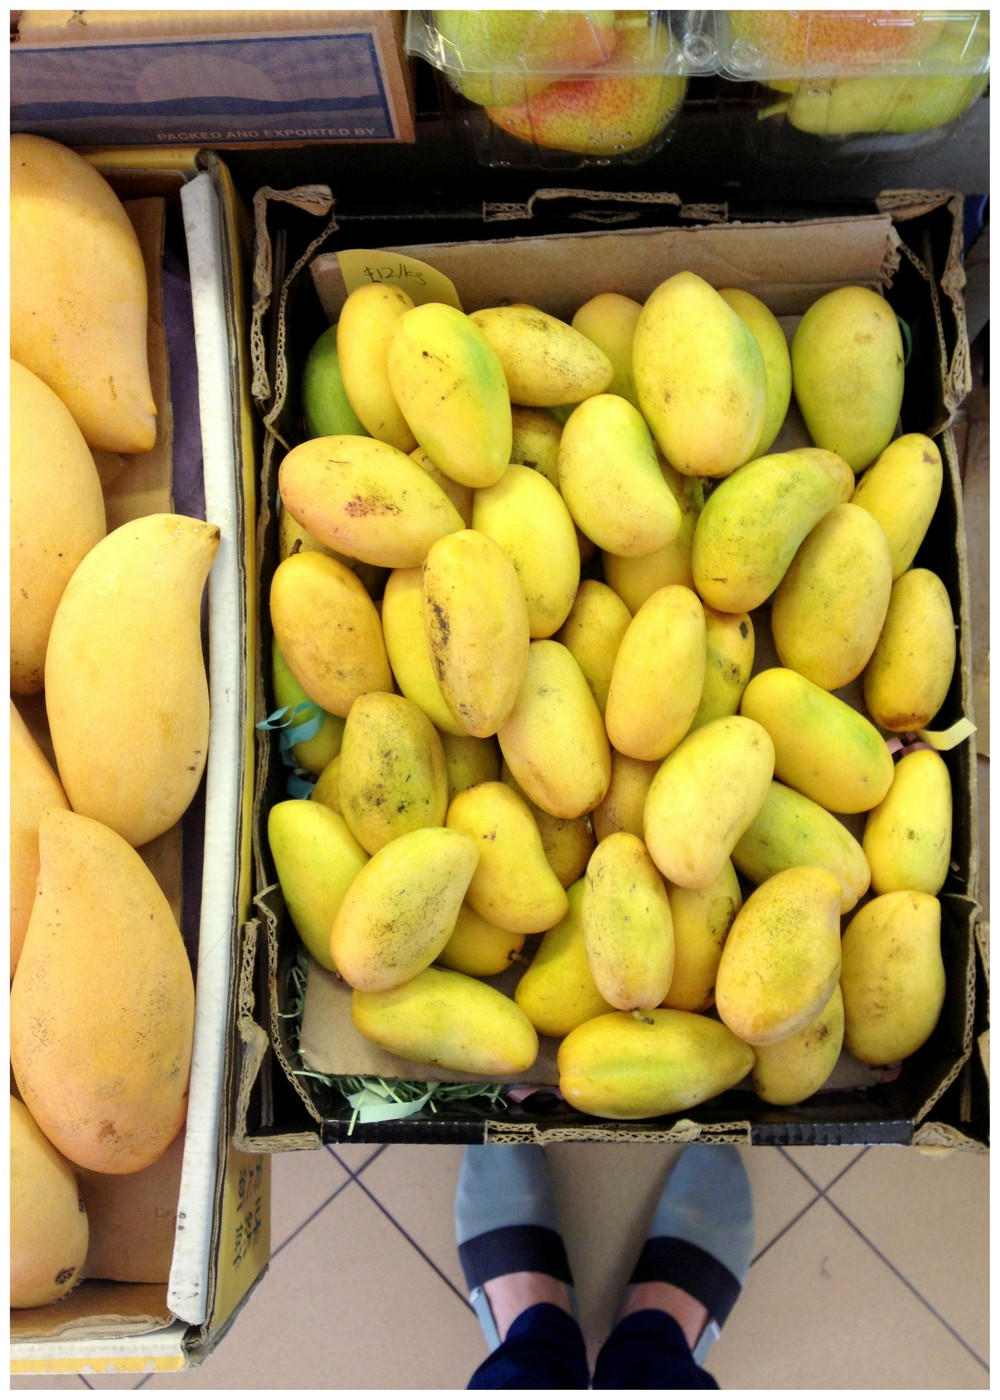 Mini mangoes!